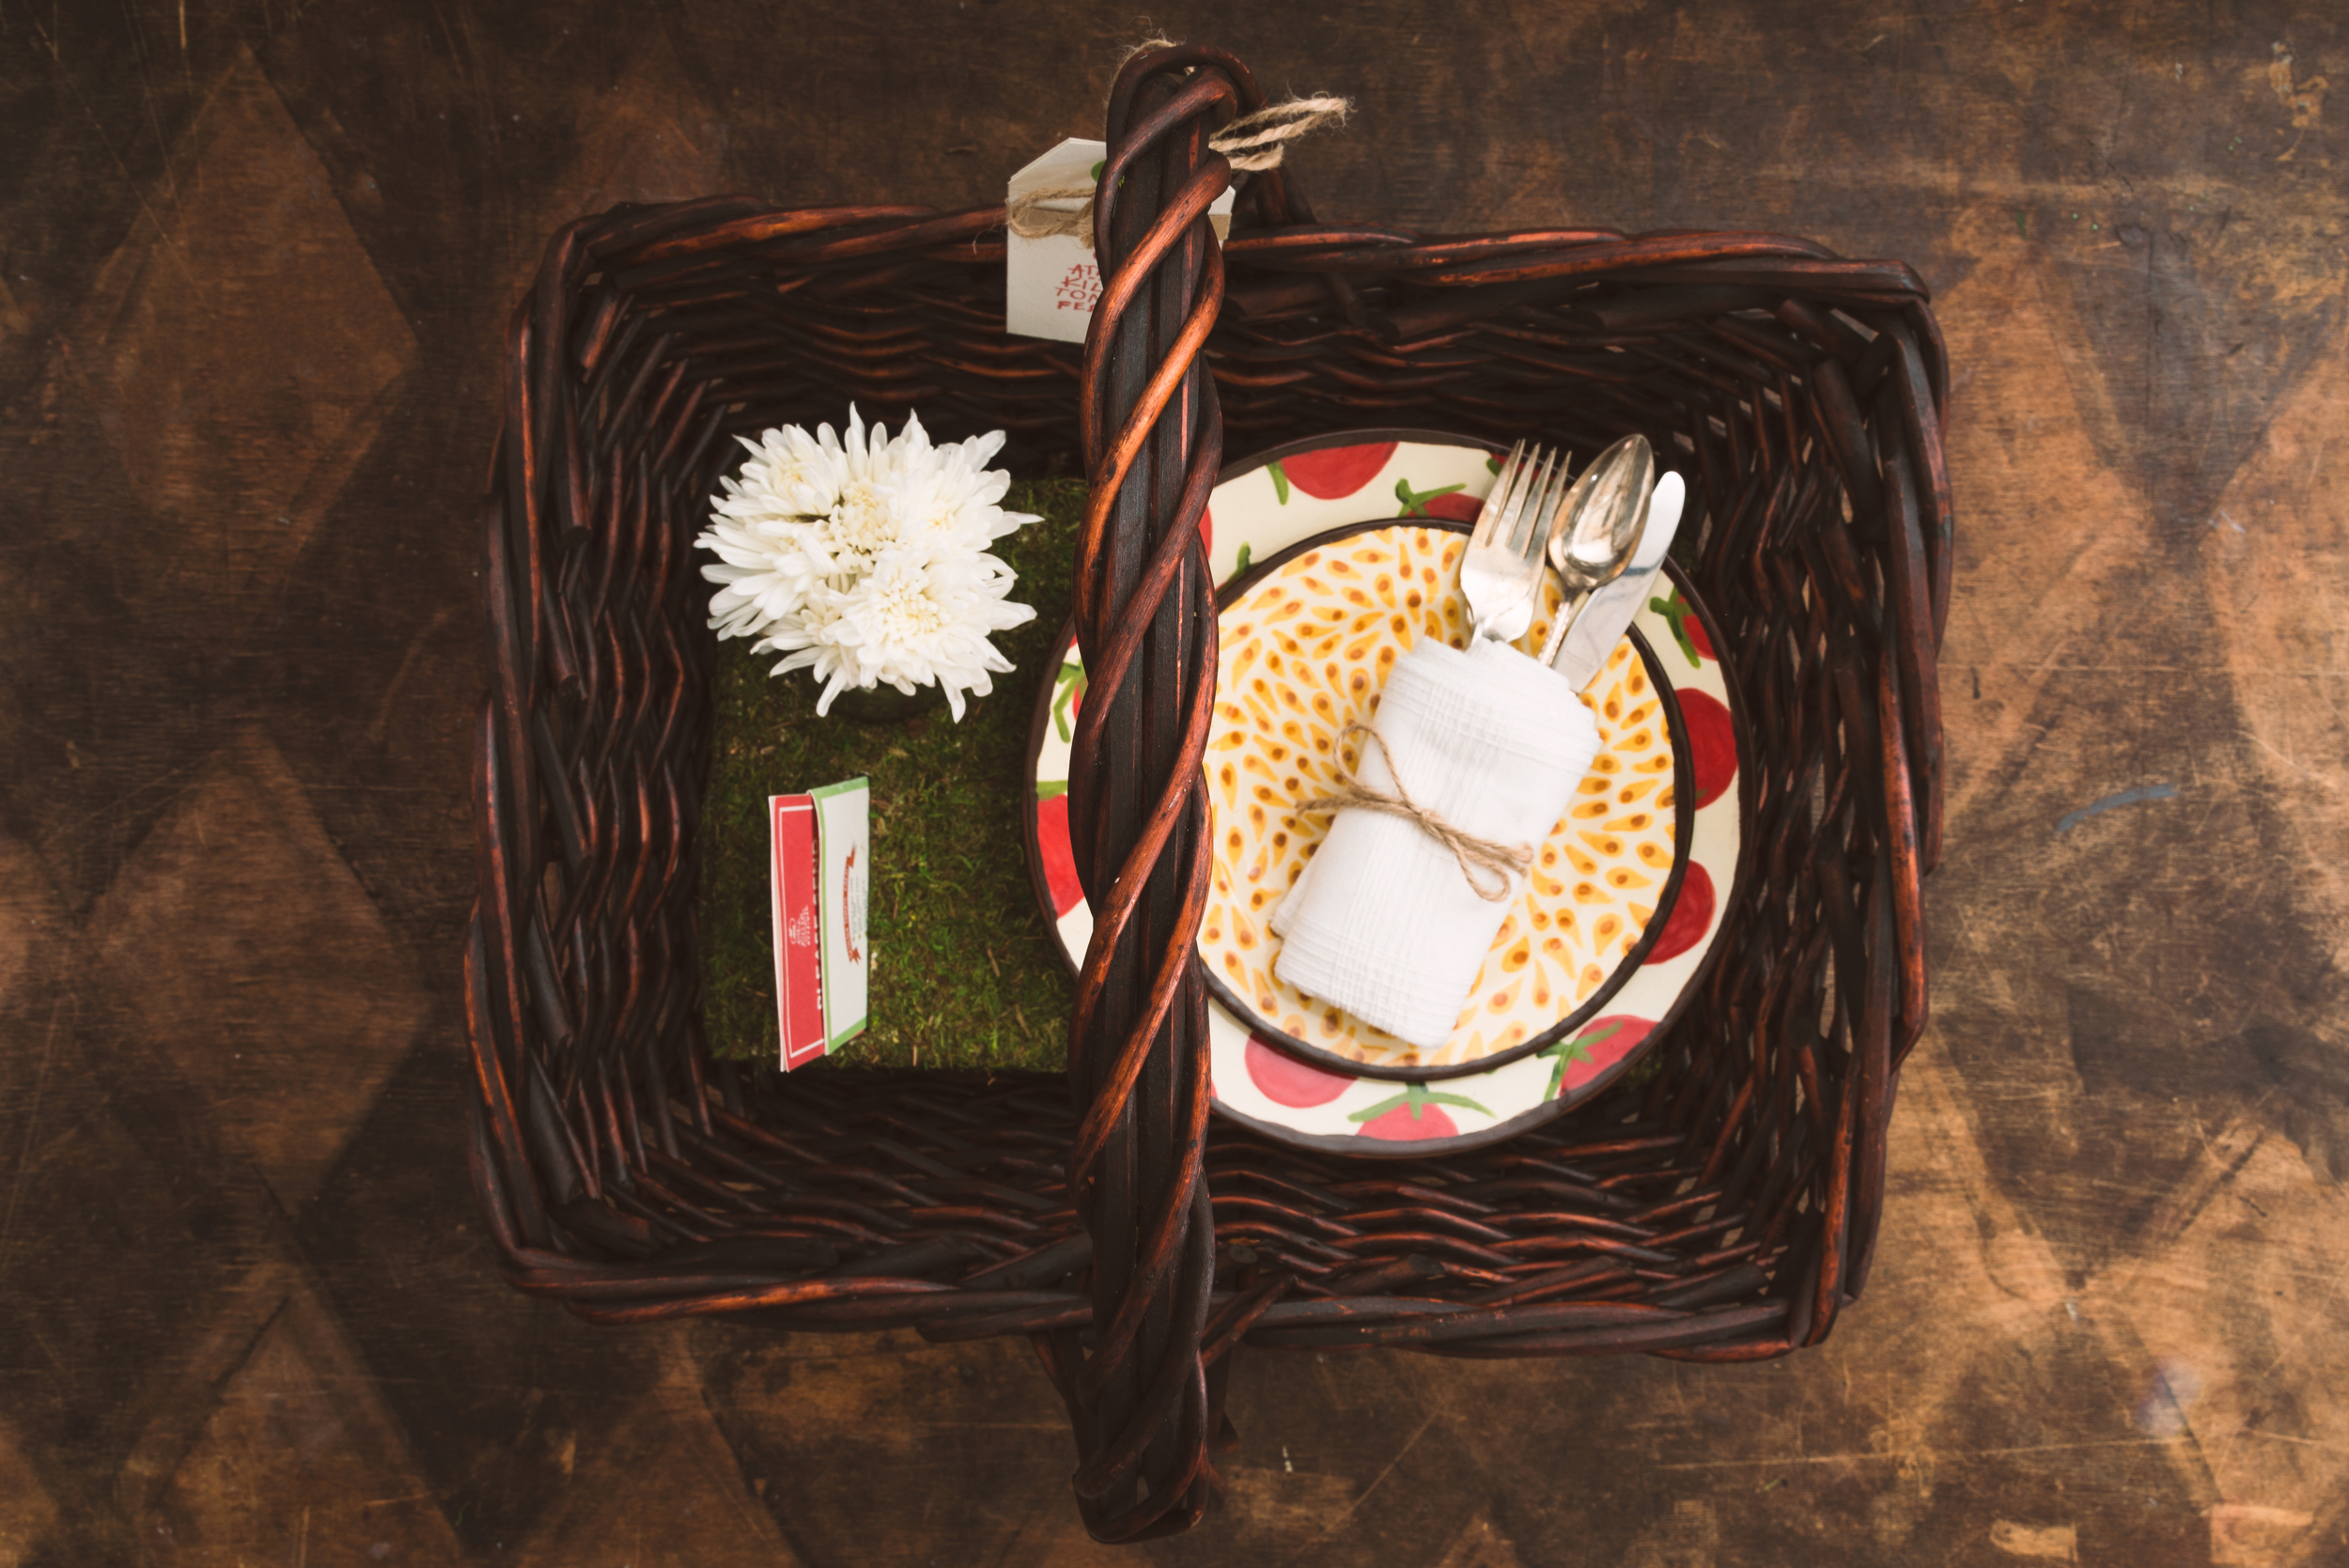 VIP Invitation: Includes a picnic basket, two hand painted plates, vintage silverware set, a can glass with fresh flowers, and an illustrated, personalized invitation.